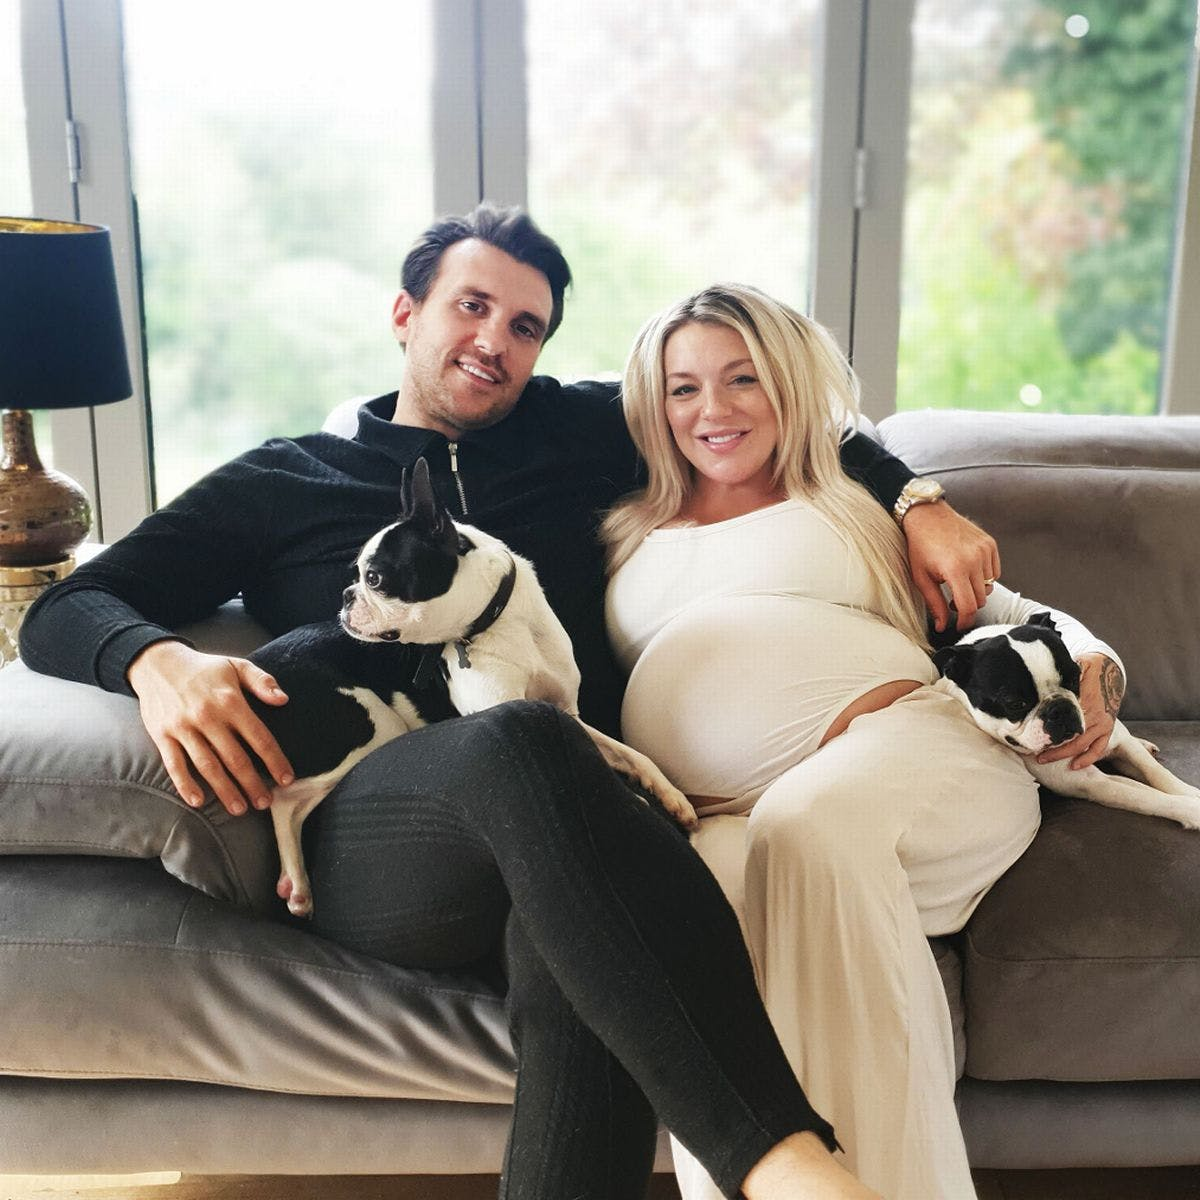 sheridan smith her partner and their dog